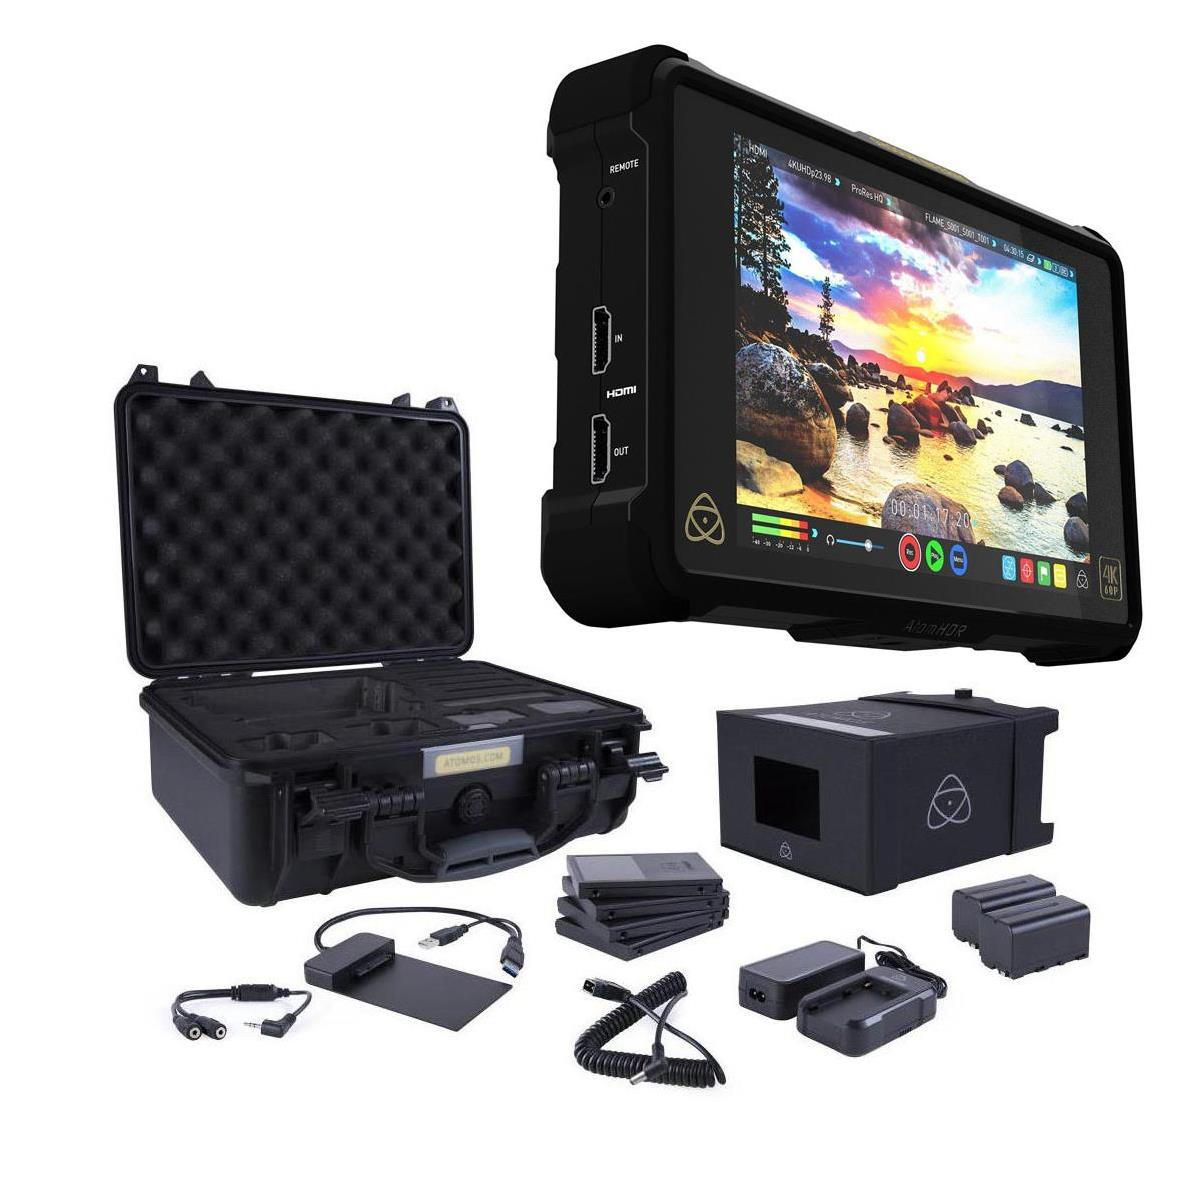 Atomos Shogun Inferno - All-in-One Monitor Recorder w/Accessory Kit, 1920x1200